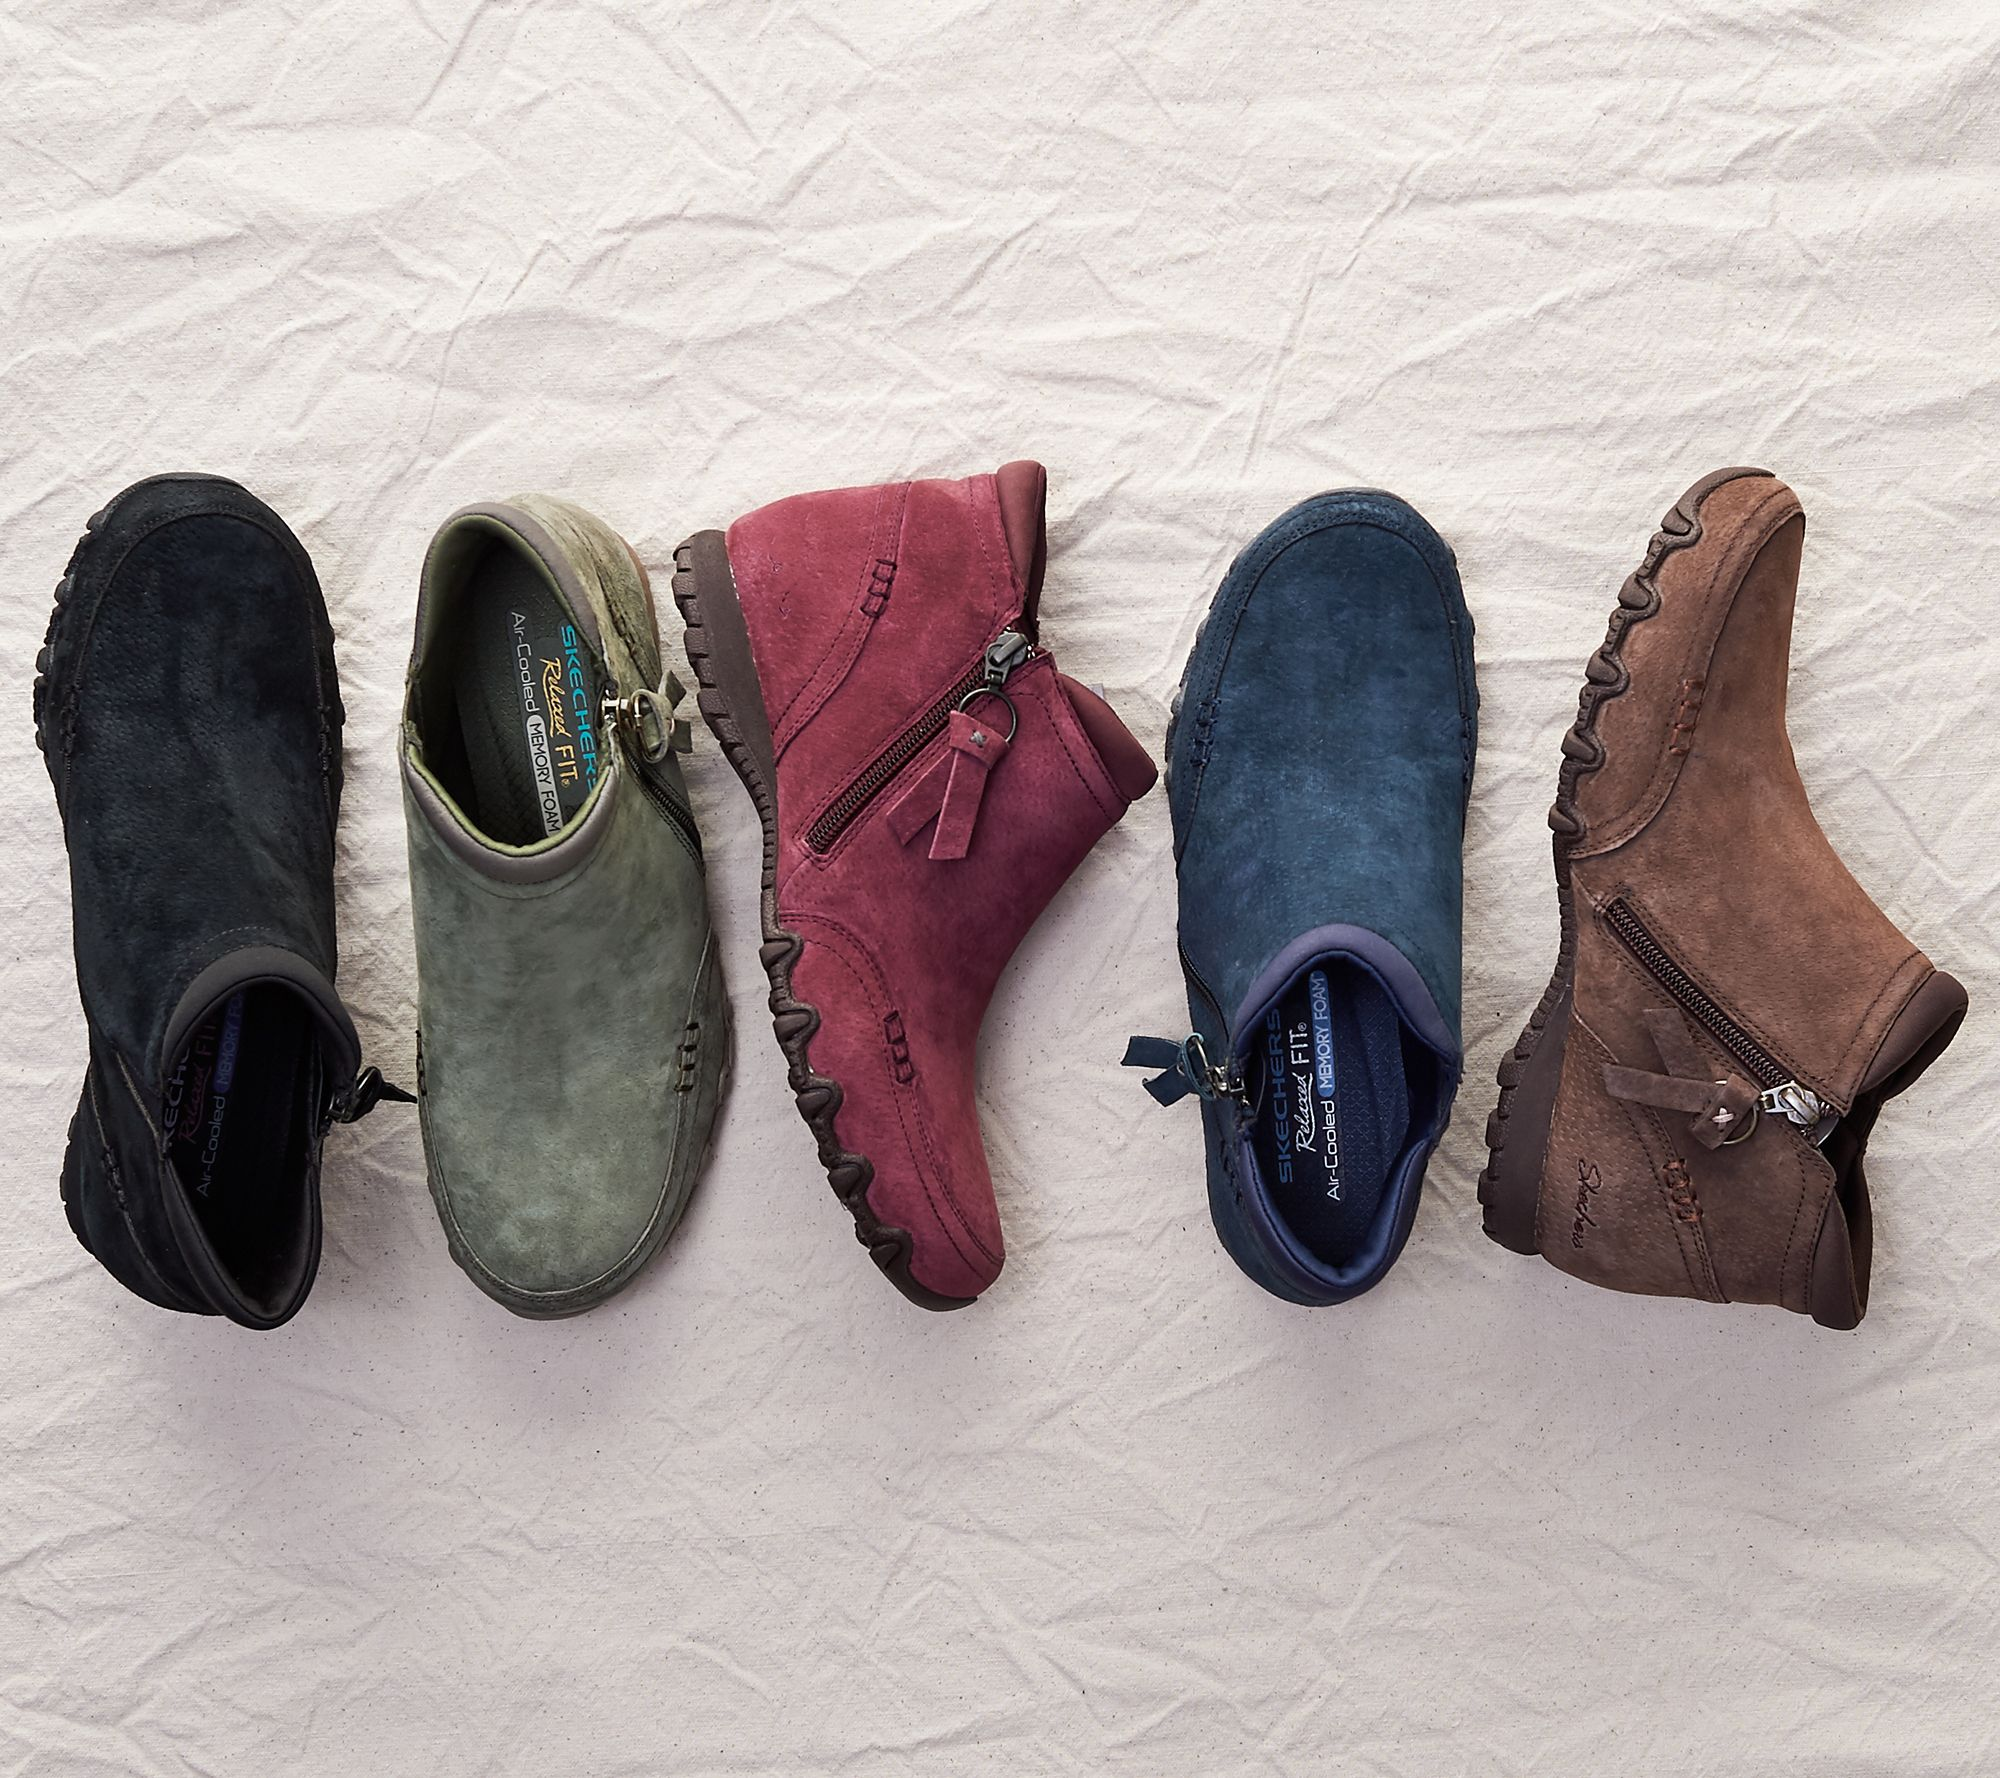 0374c3c67f9 Skechers Relaxed Fit Suede Ankle Boots - Zappiest - Page 1 — QVC.com